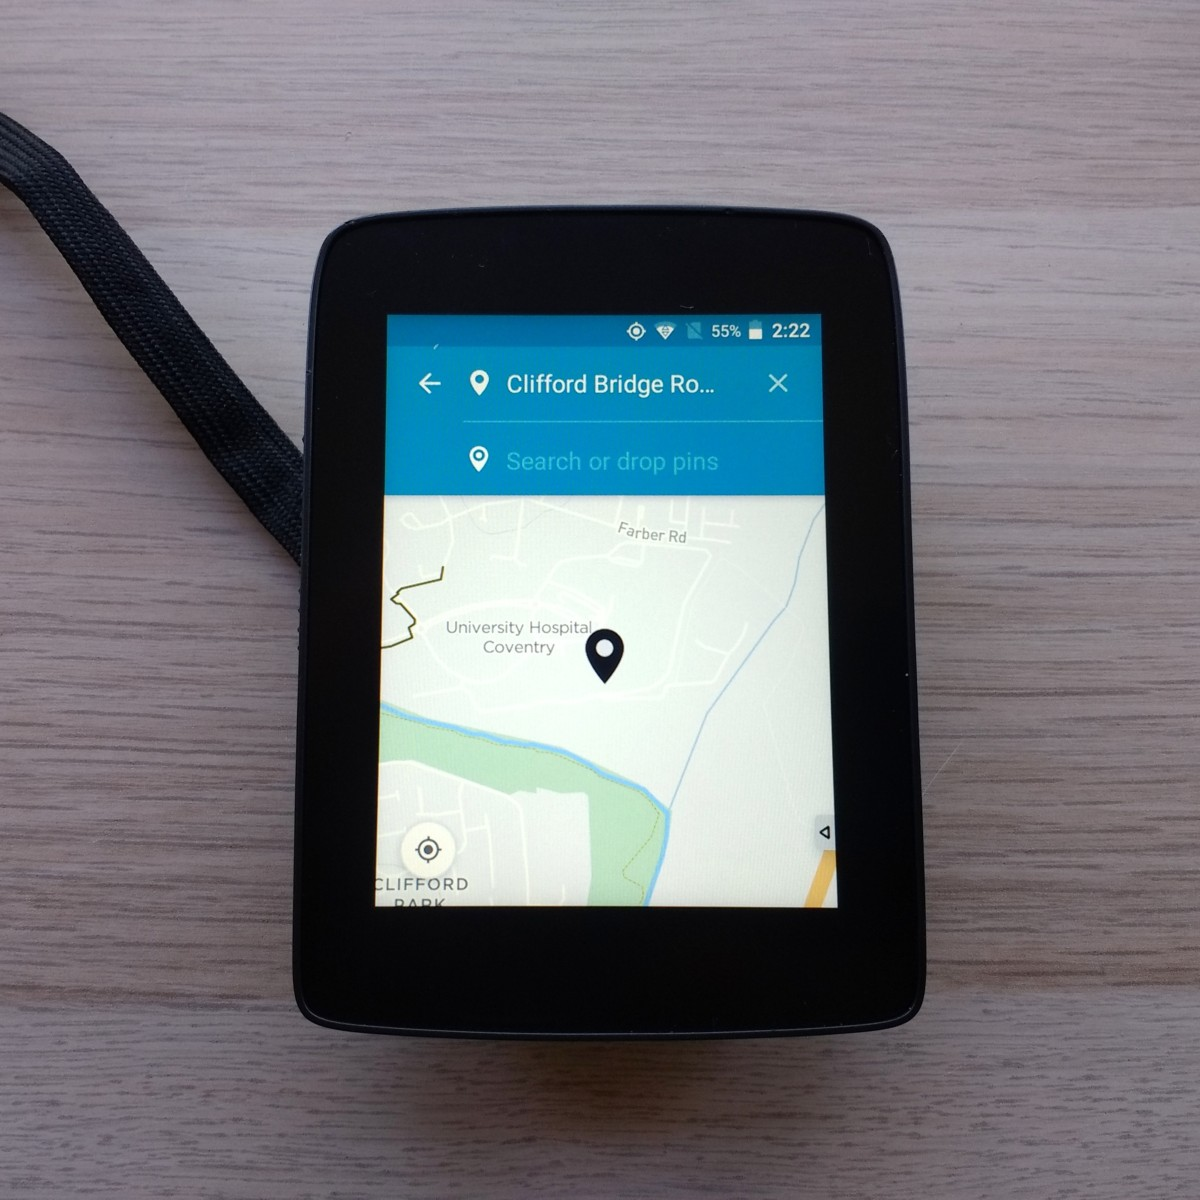 TitaniumGeek IMG 20181010 142255837 01 Hammerhead Karoo GPS Review   Android on your bike Cycling Cycling Computers and GPS Units Gear Reviews  Karoo GPS cycling Bike computer android   Image of IMG 20181010 142255837 01